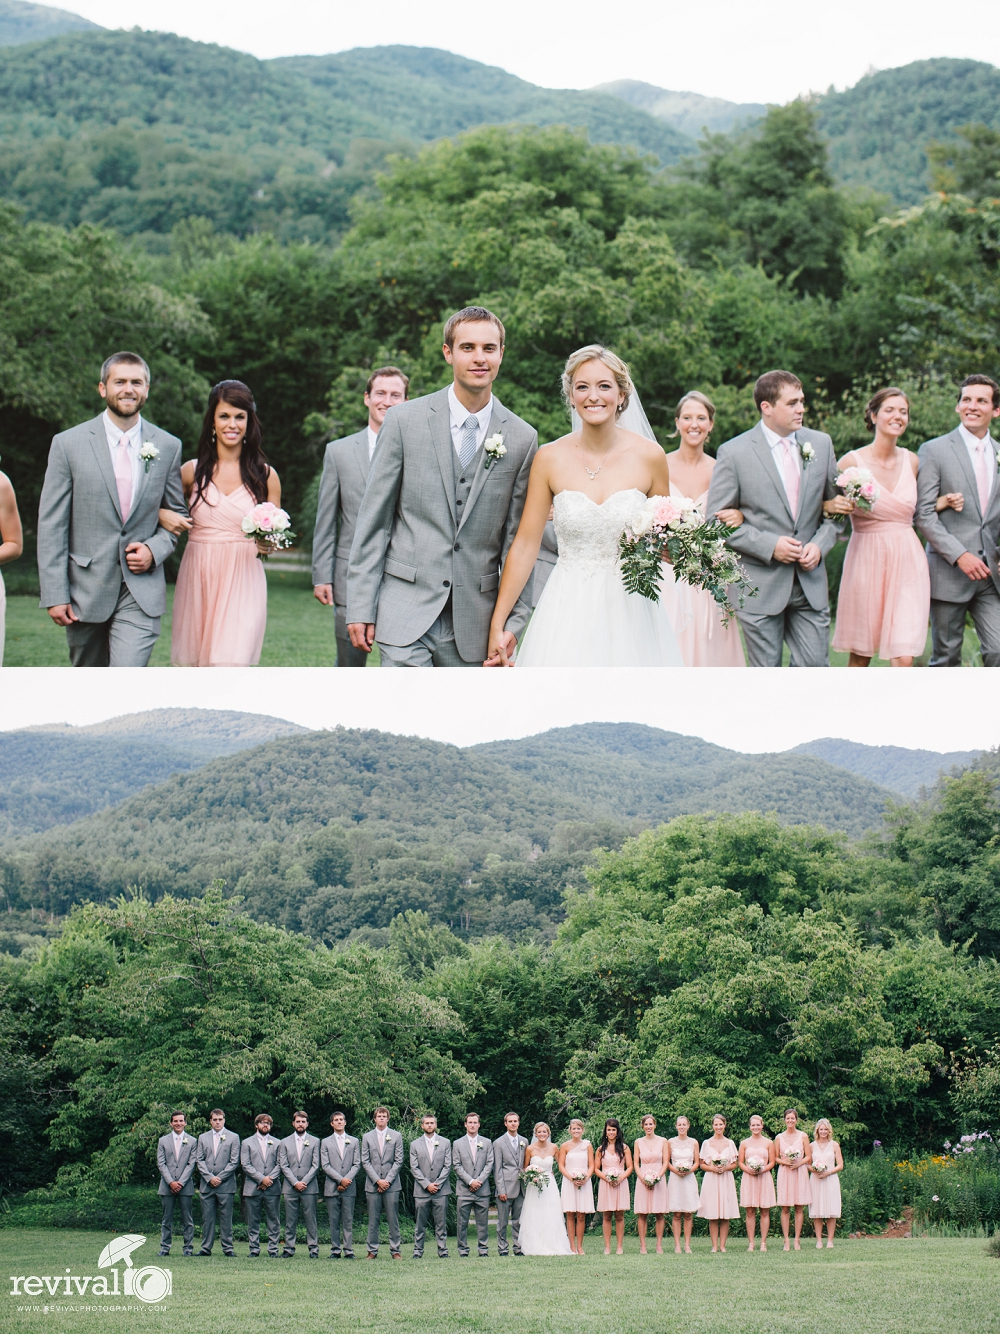 How to Choose the Perfect Wedding Colors by Revival Photography Wedding Photographers in North Carolina www.revivalphotography.com